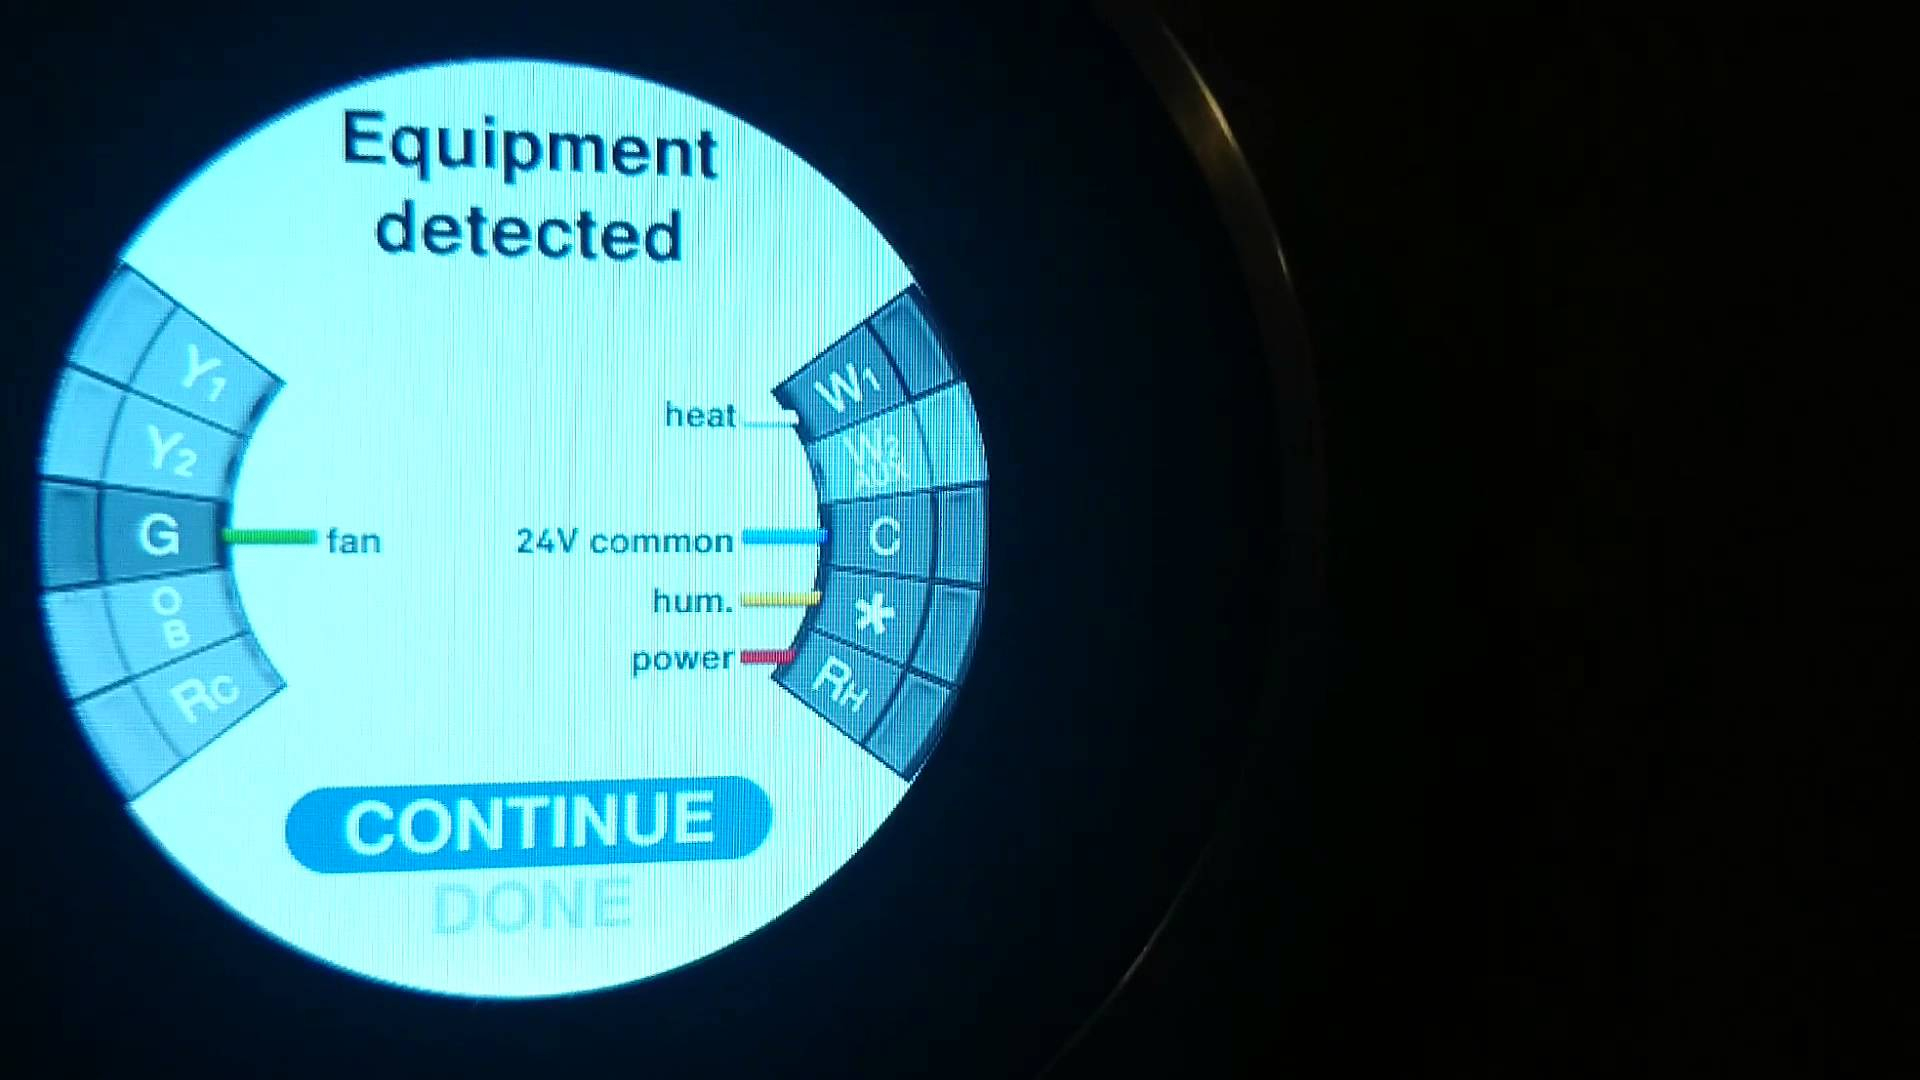 Setup Nest Thermostat Flowthrough Buypass Humidifiers Lyric - Nest Wiring Diagram Heat Only